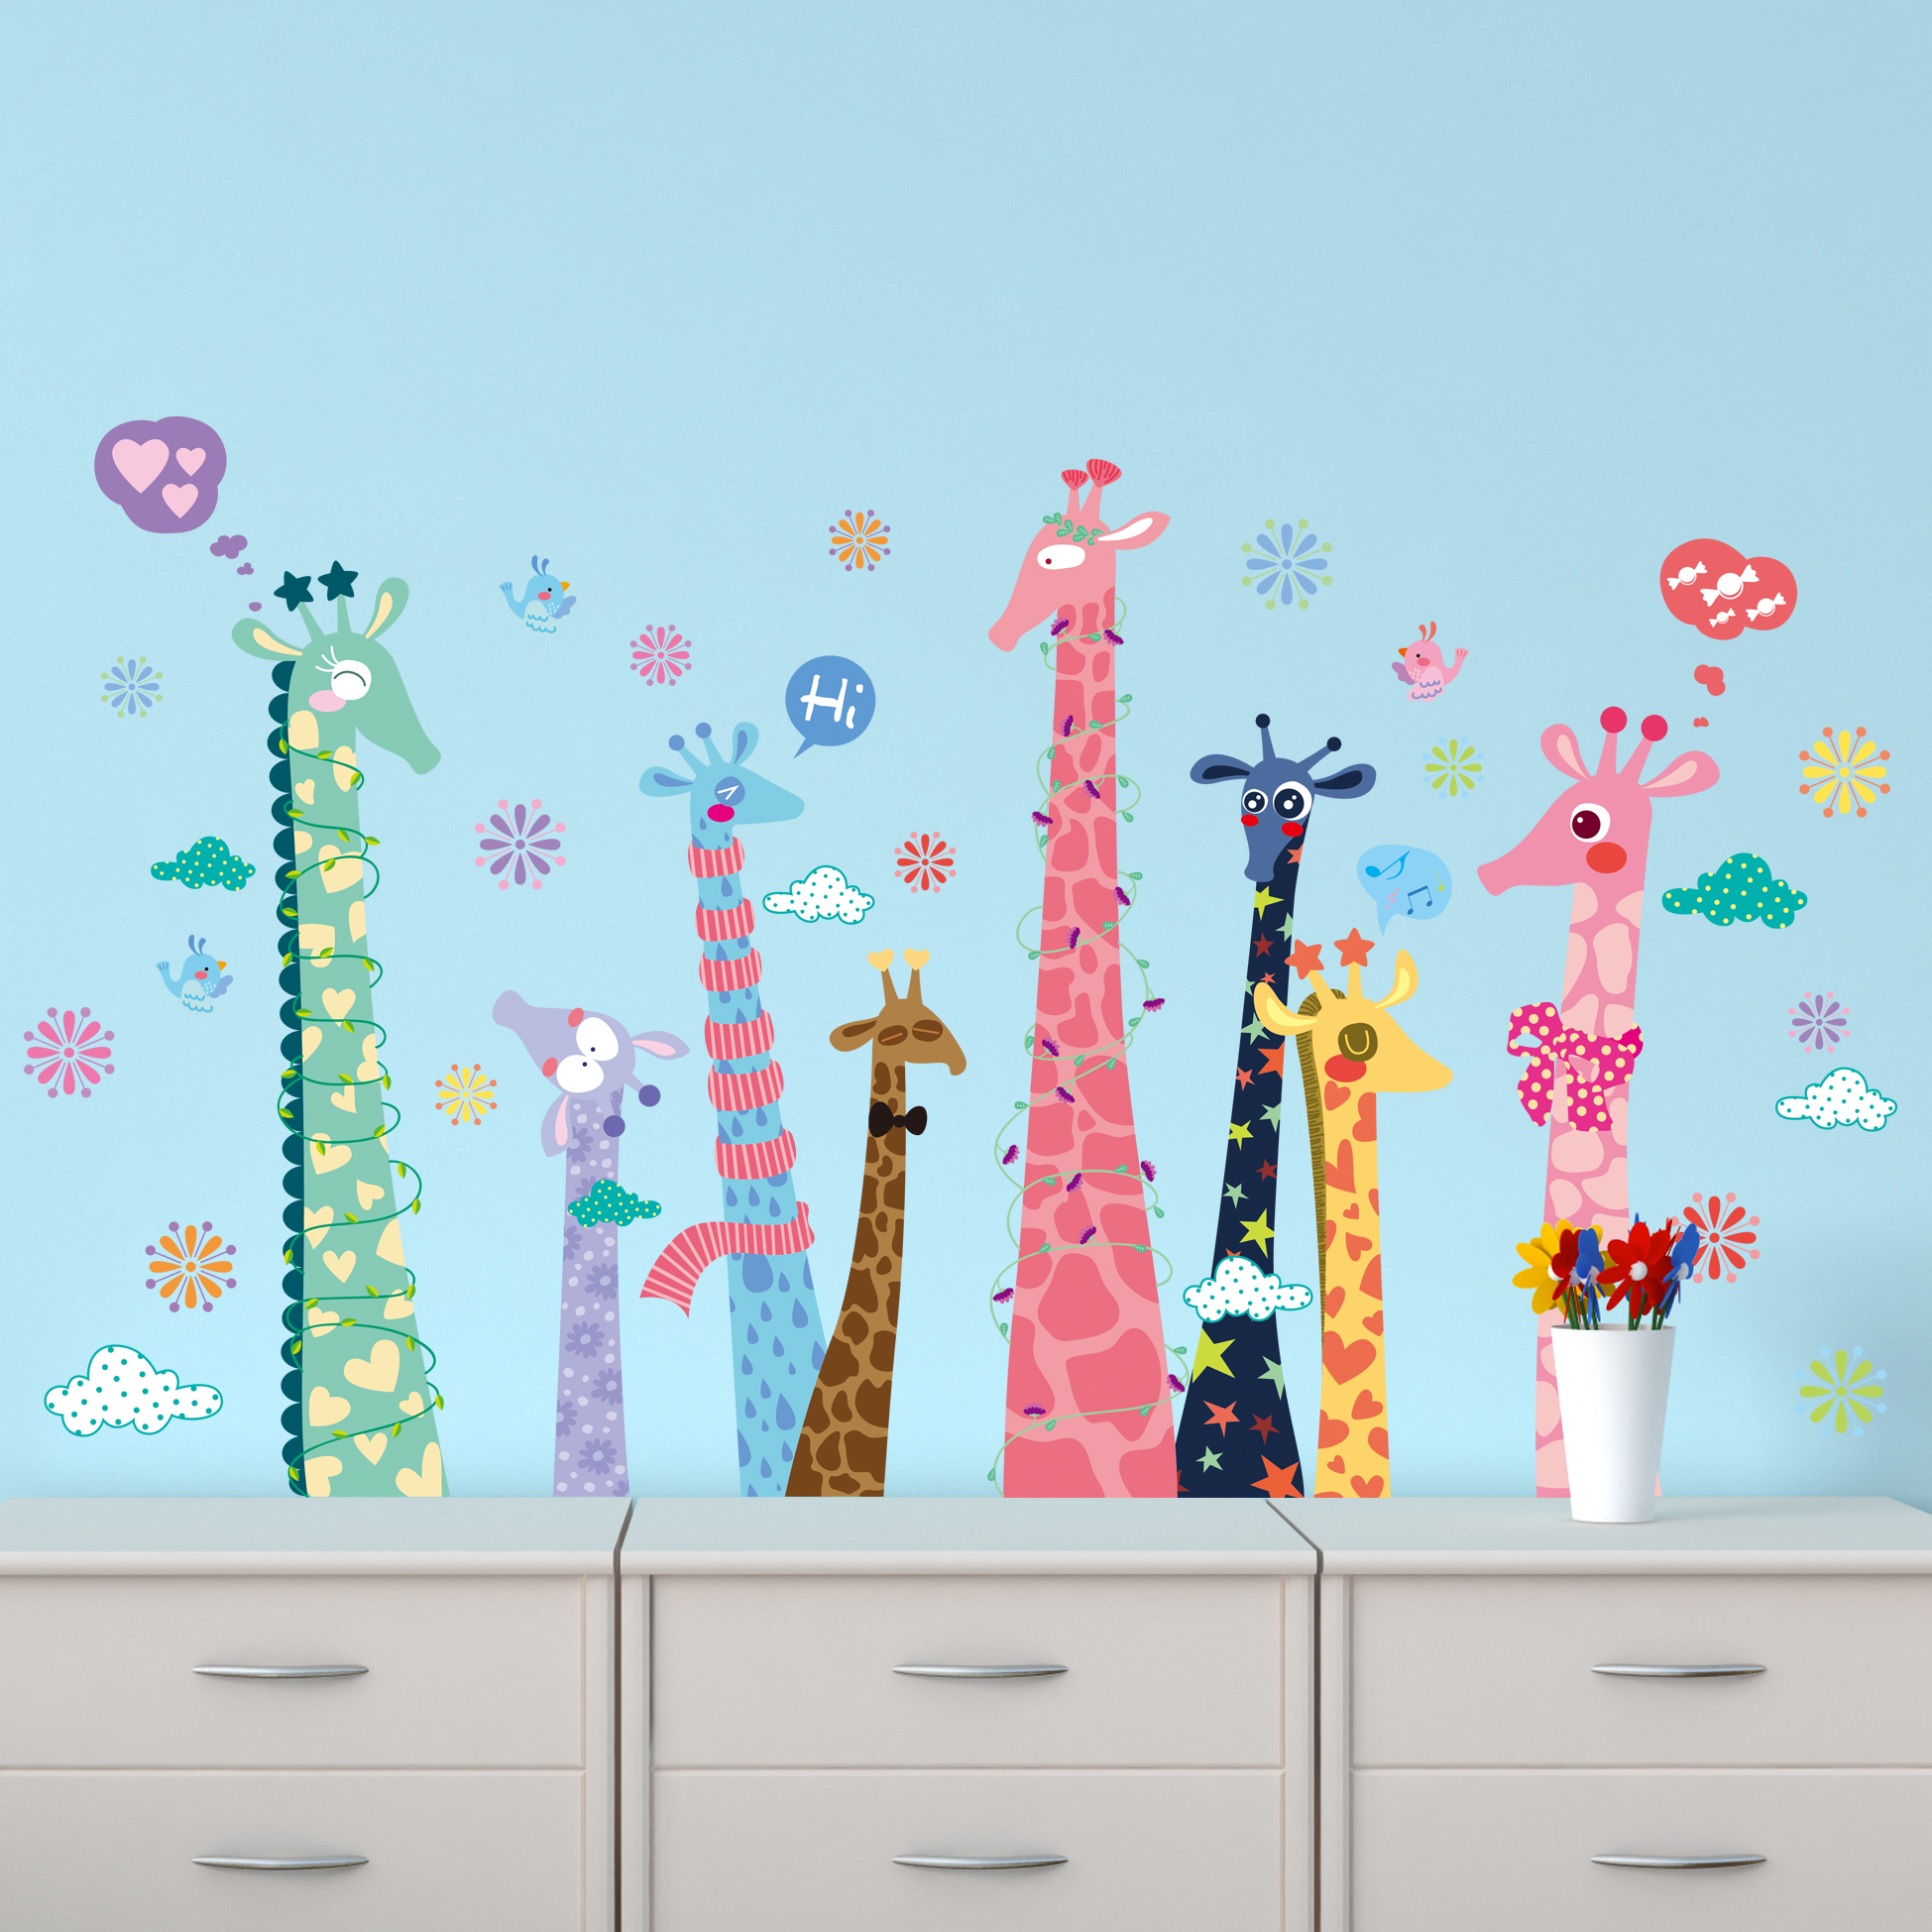 Best Wallpaper Colorful Giraffe - Colorful-color-giraffe-Wallpaper-For-Kids-Rooms-Home-Decor-Art-Decals-3D-Sofa-Bedroom-house-decoration  Image_469440 .jpg